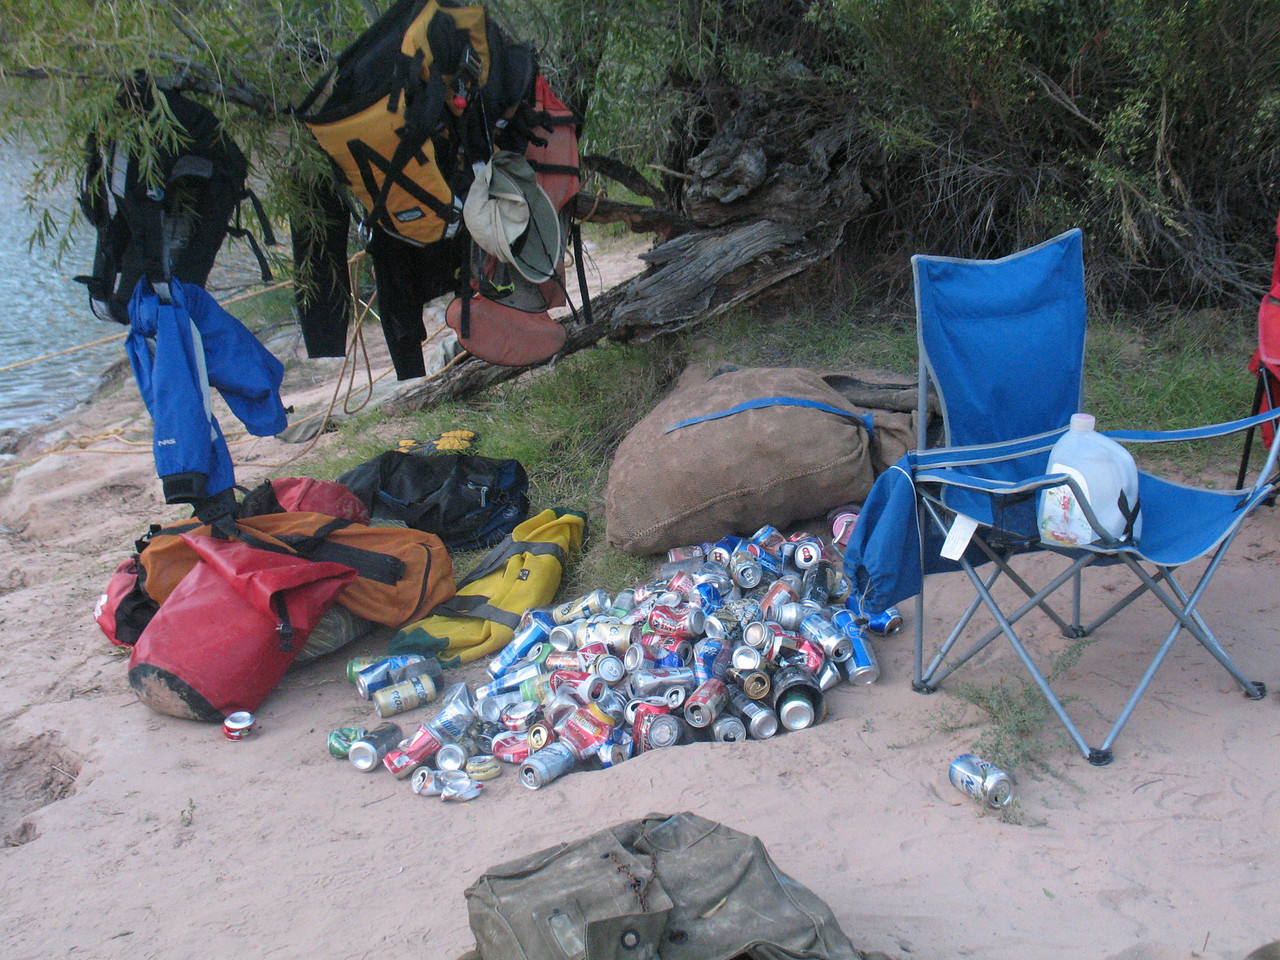 At camp, as beer is drunk, cans are tossed in a pile.  Before we launch the next day, cans are smashed, and go into the burlap bag, behind.  Everything must be packed out.  Actually, this was a layover camp, so this pile represents 2 days worth of what 14 people drank.